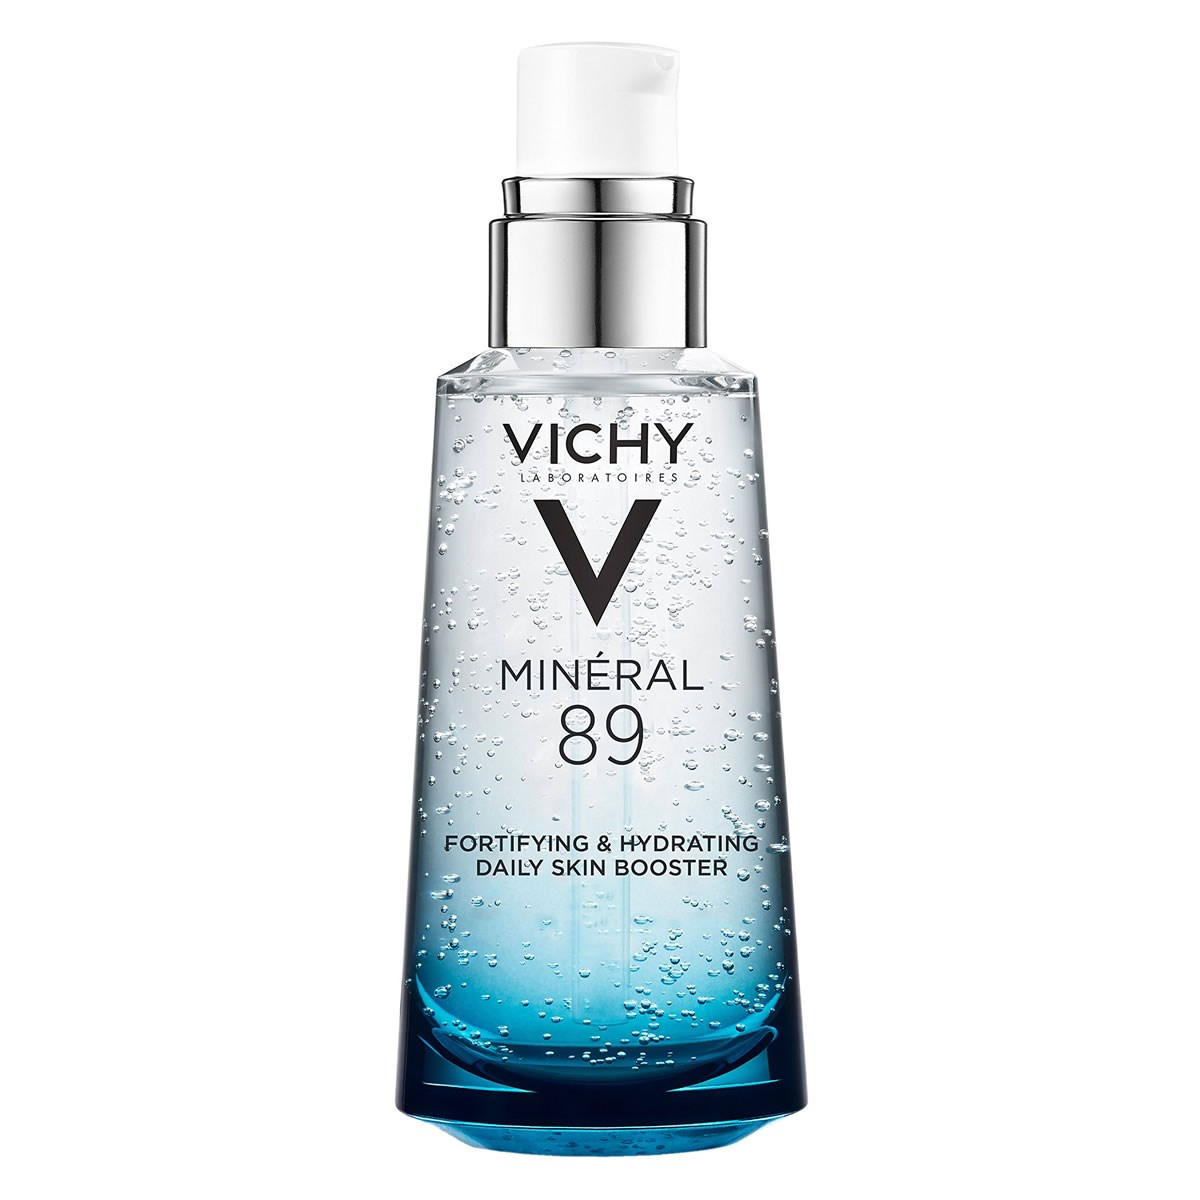 Cosmetics beauty Vichy Minéral 89 Skin Fortifying Daily Booster